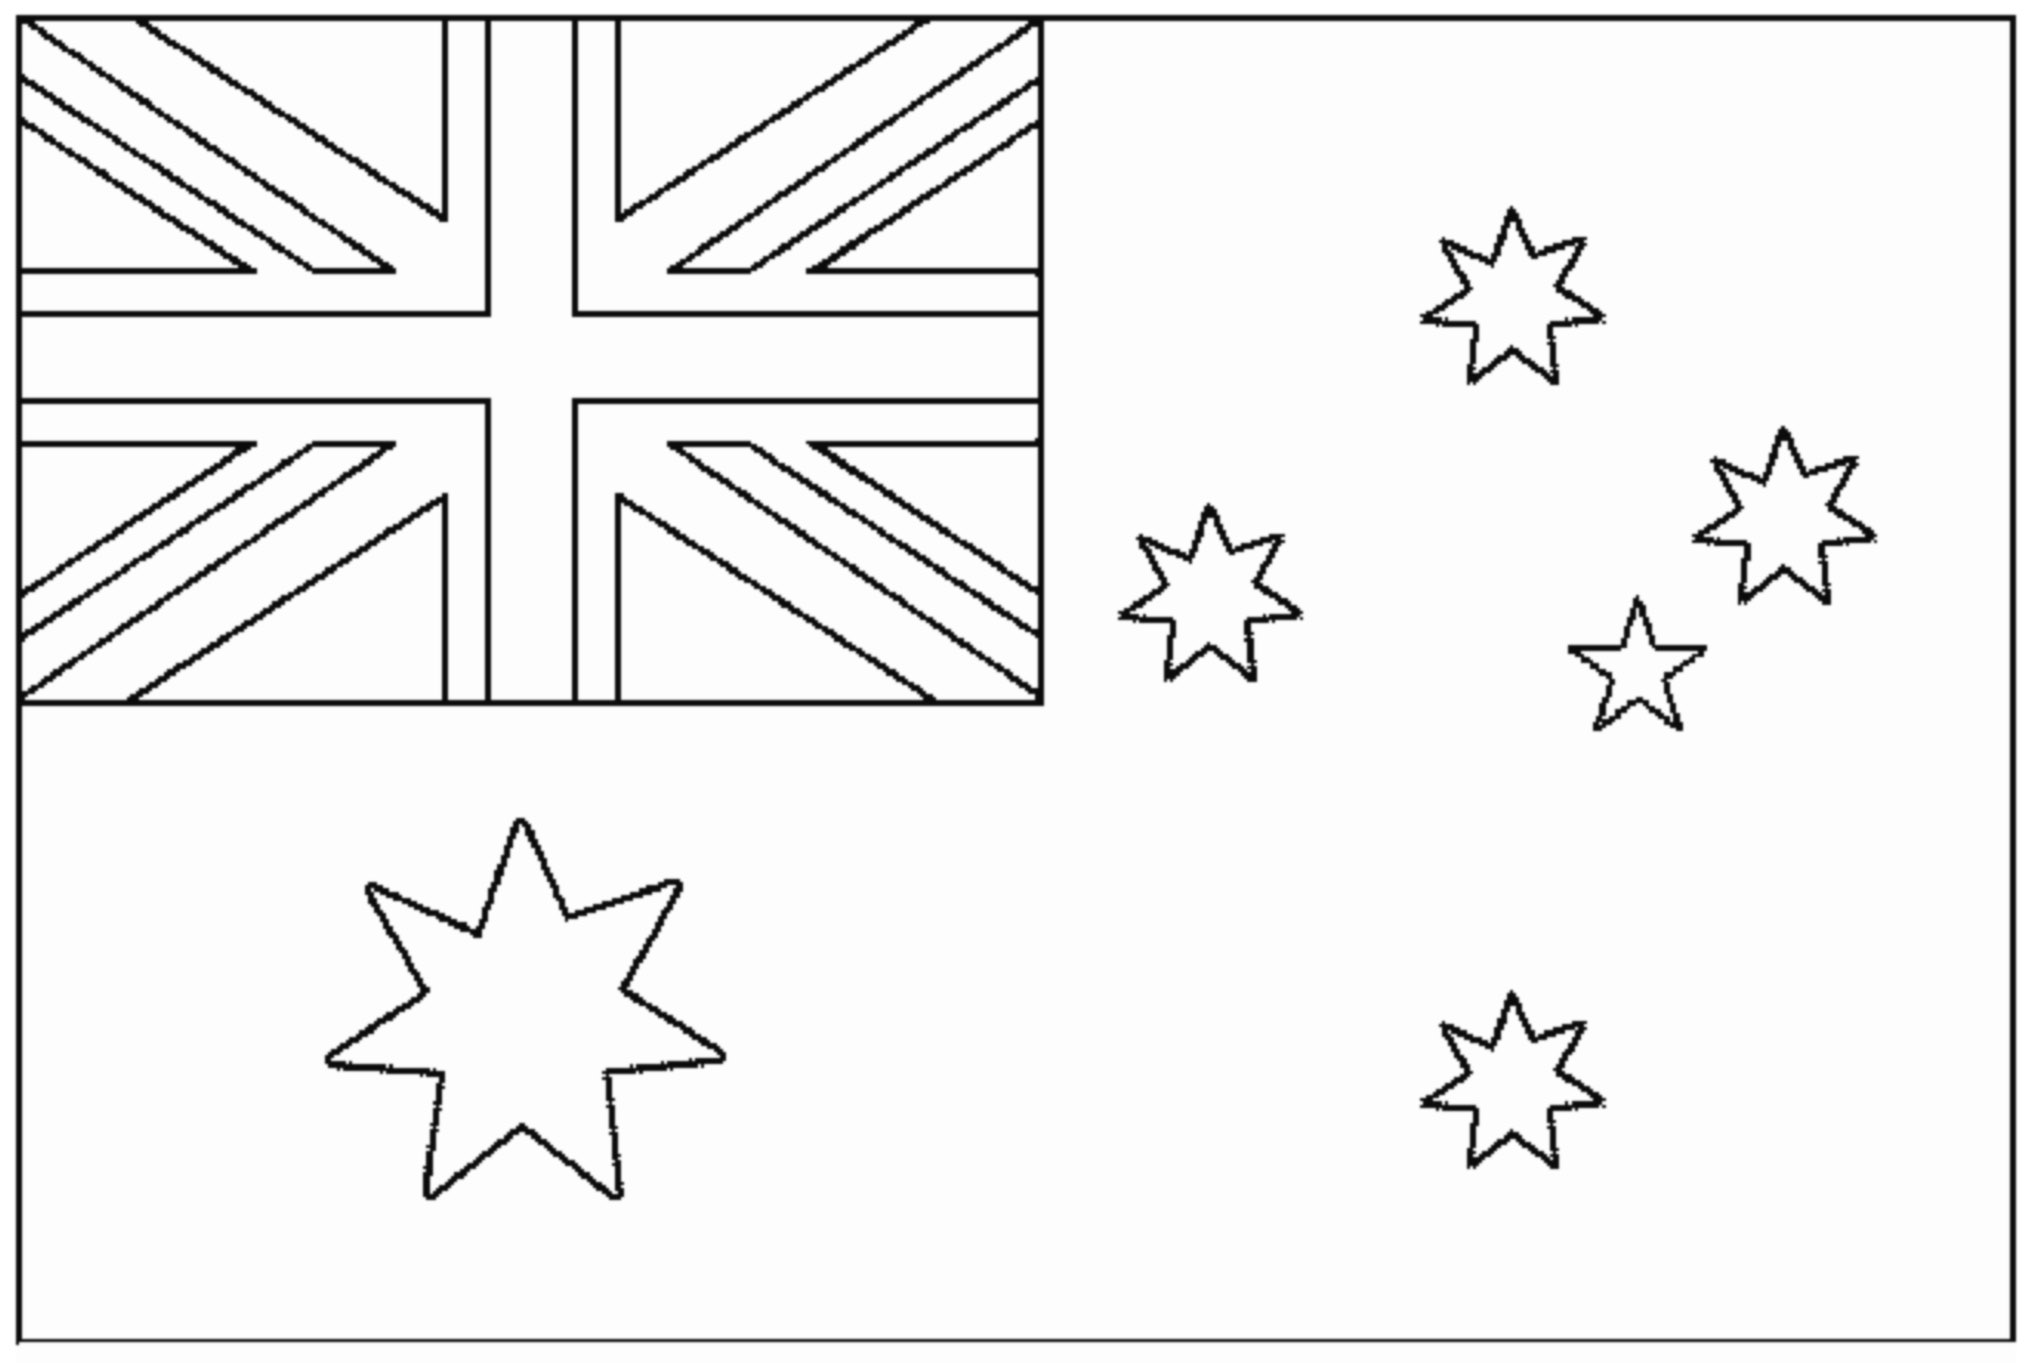 Flag australia - Flags Coloring pages for kids to print & color